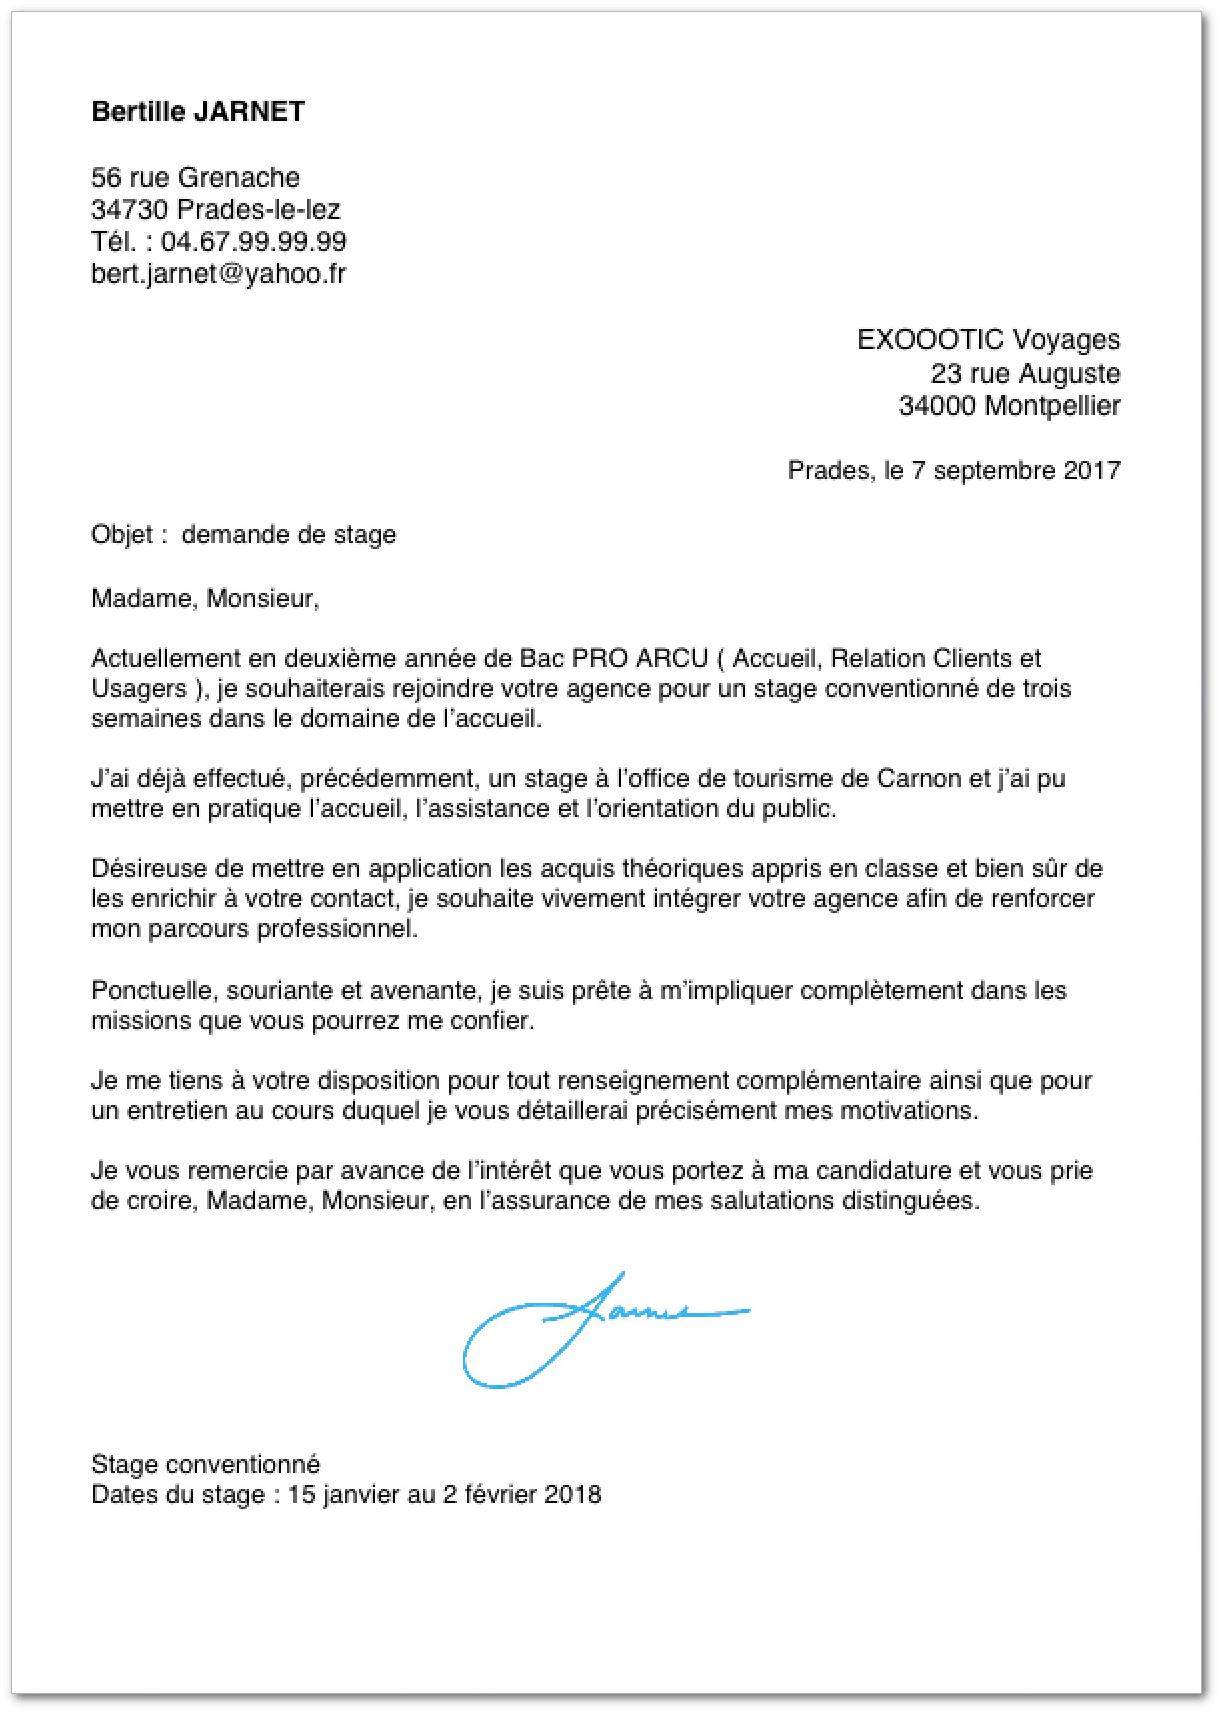 exemple de cv stage bac pro Exemple de lettre de motivation pour un stage en bac pro exemple de cv stage bac pro